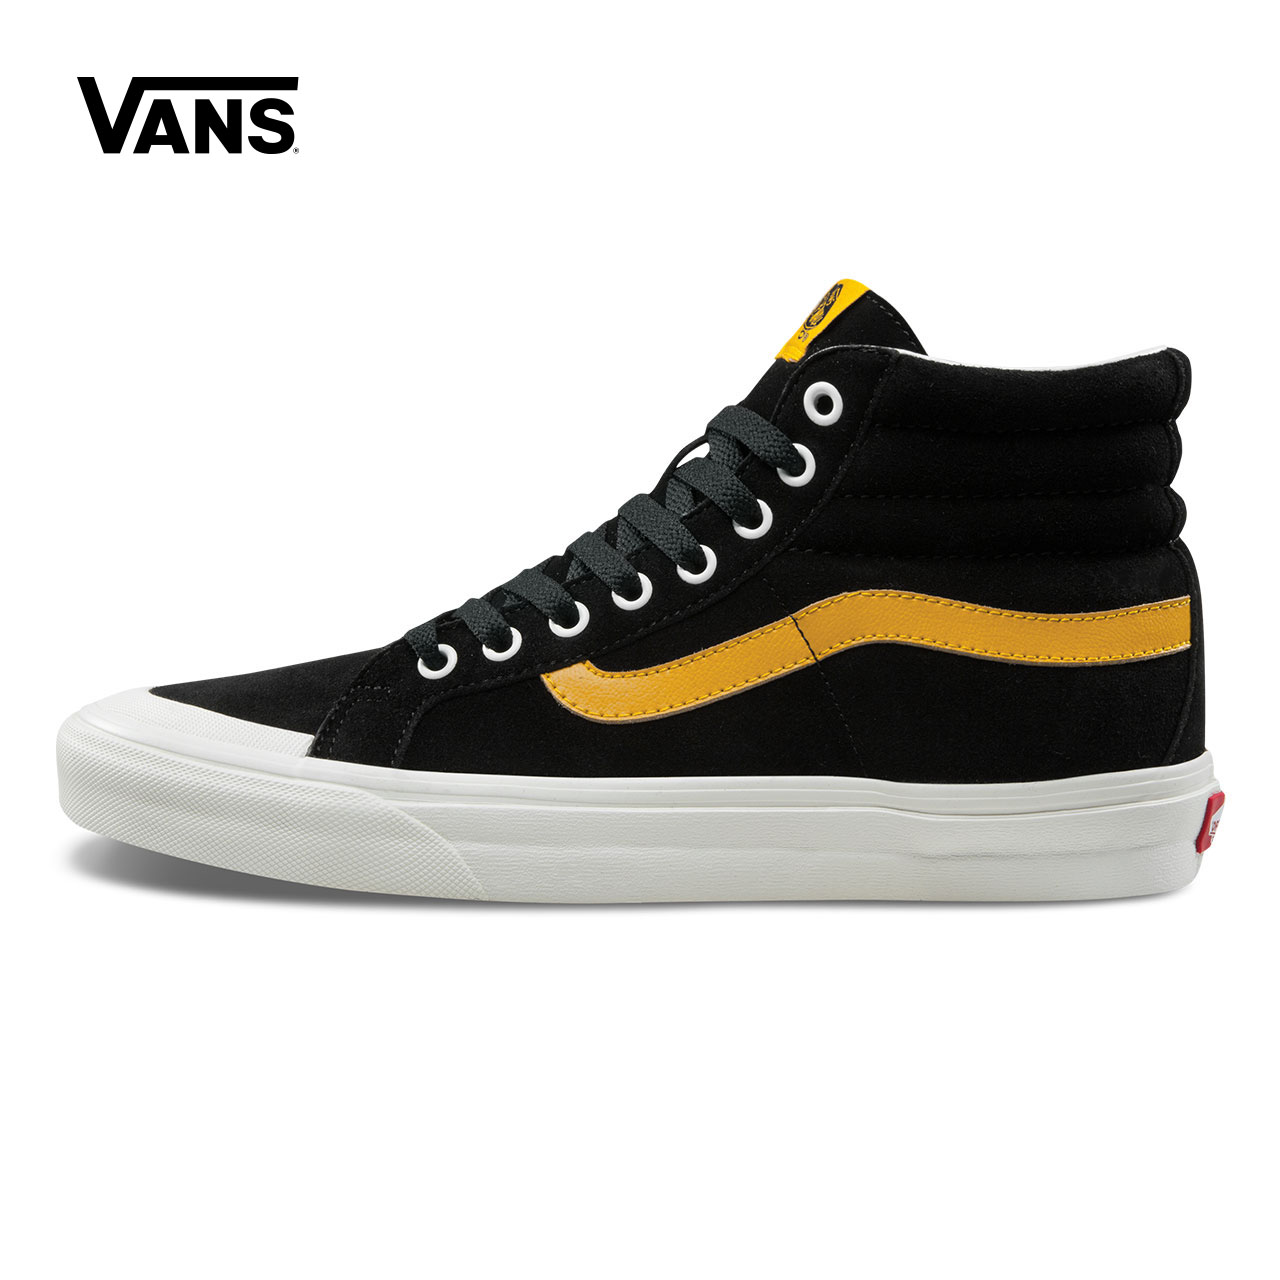 Vans vans classic series sk8 hi skate shoes high top new men's official authentic